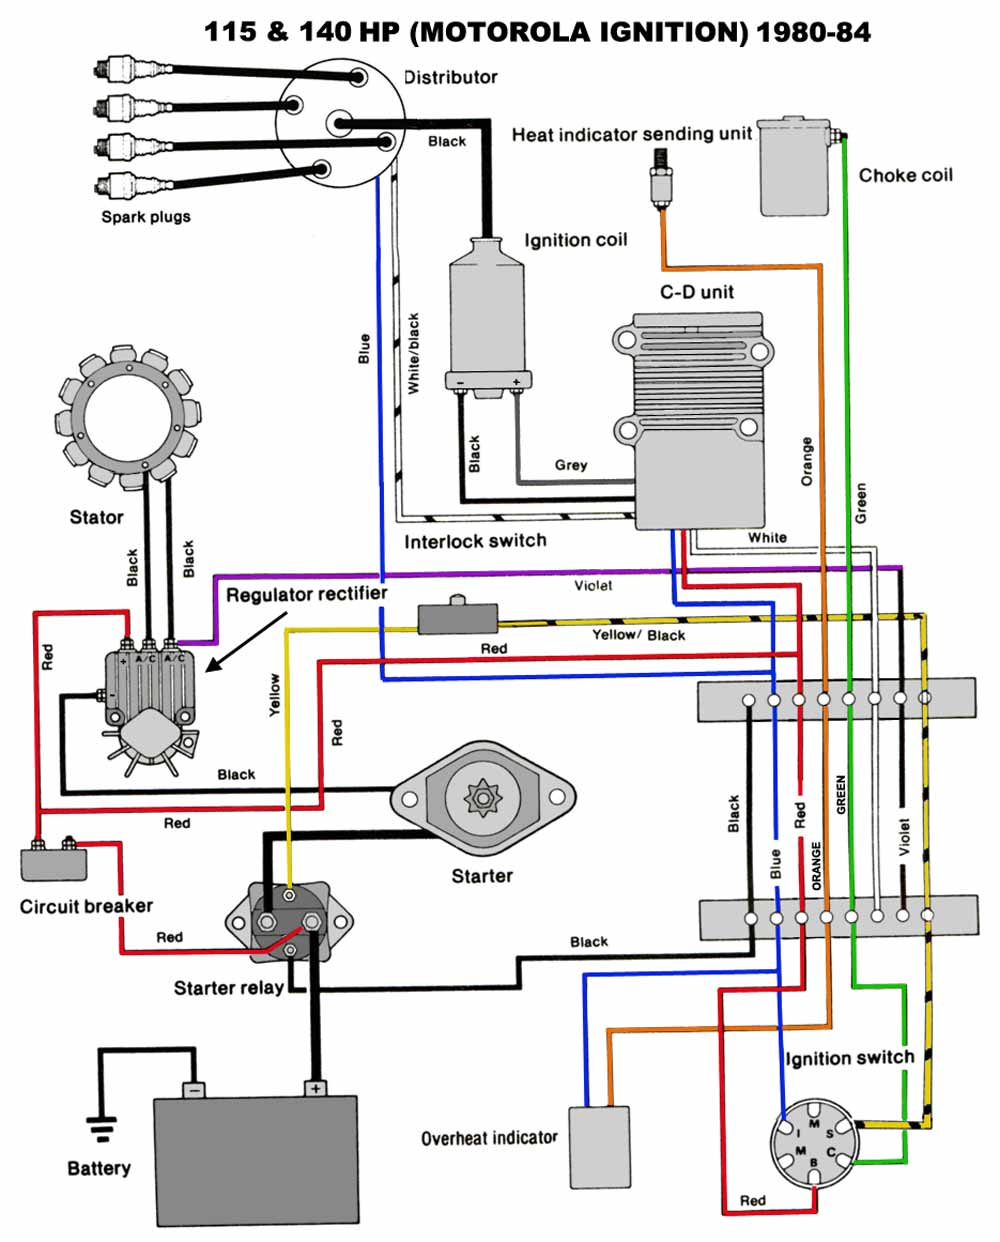 2B20D 3 Wire Alternator Wiring Diagram 3 7 Merc | Wiring ... on 3.7 mercruiser thermostat, 3.7 mercruiser voltage regulator, 3.7 mercruiser exhaust,